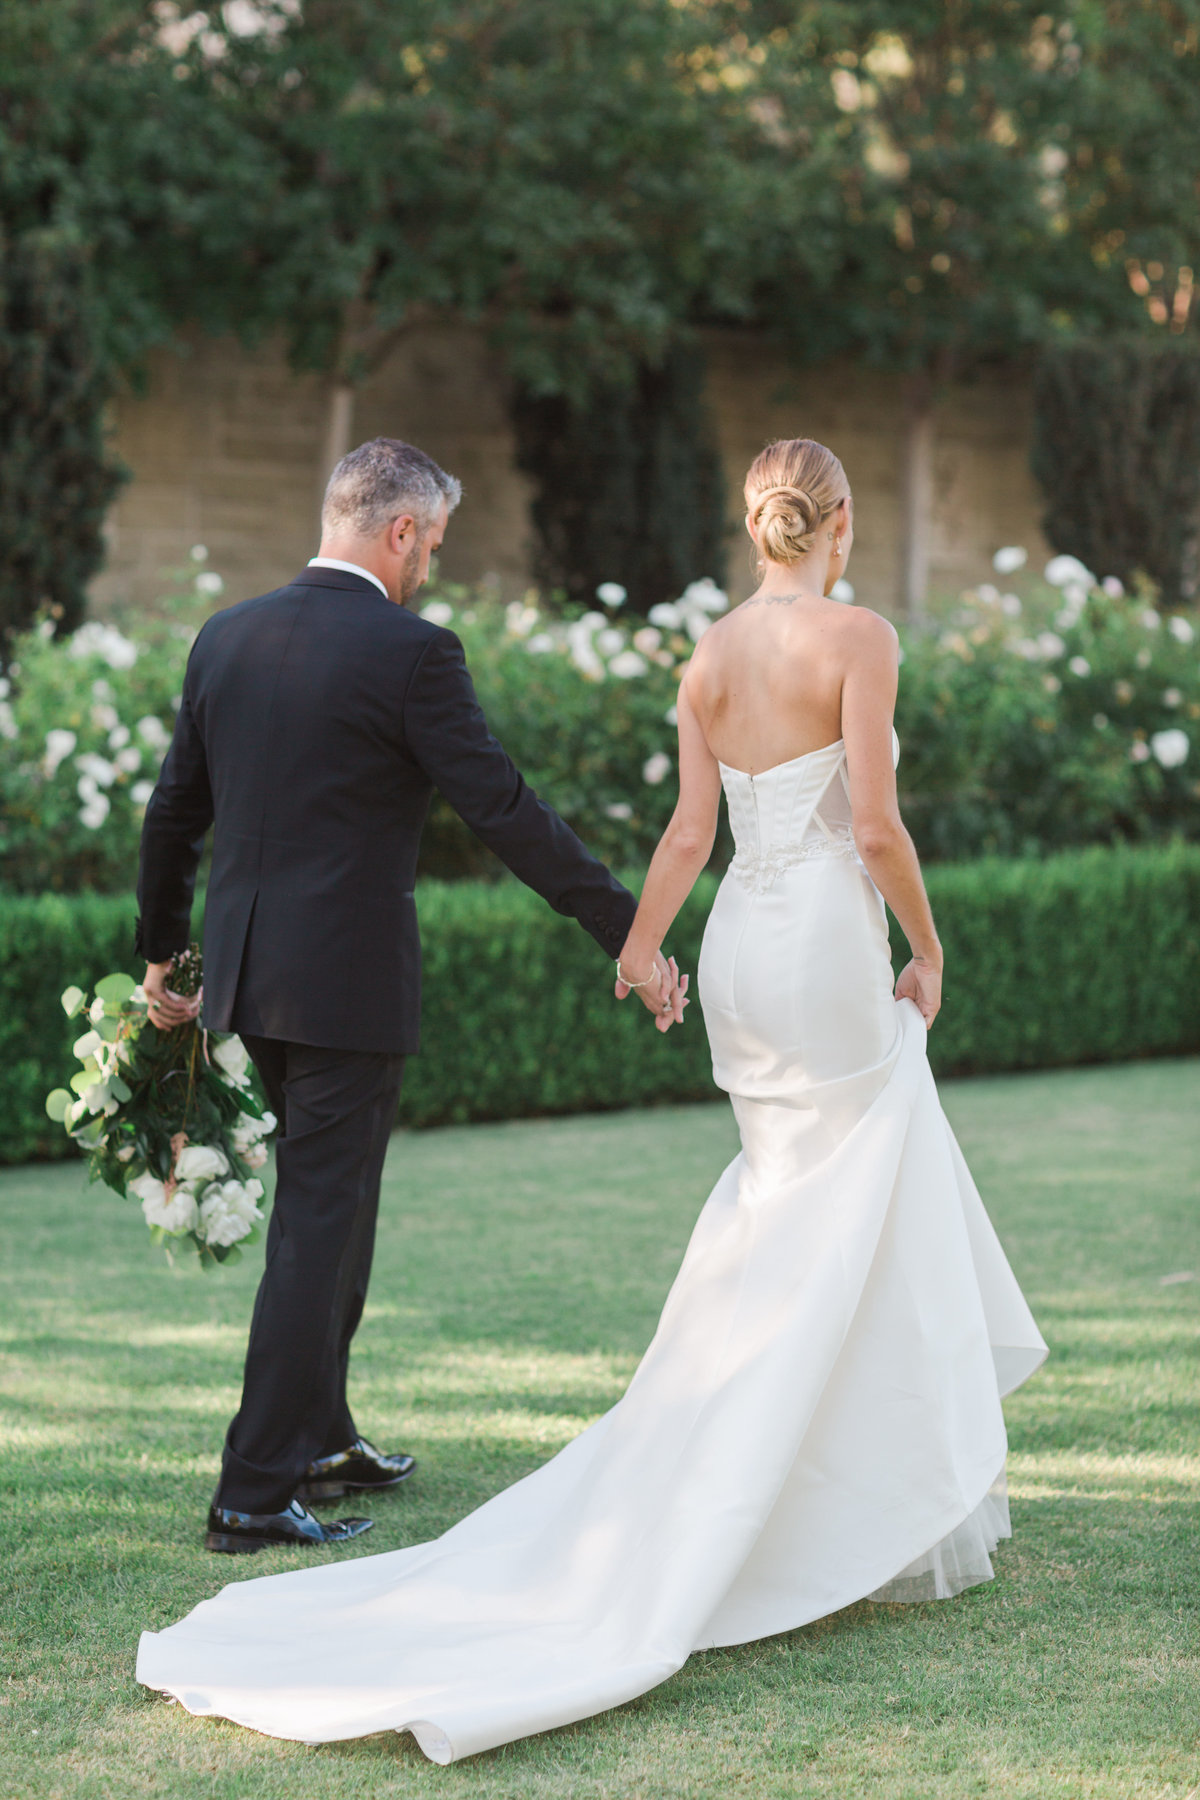 Greystone_Mansion_Intimate_Black_Tie_Wedding_Valorie_Darling_Photography - 148 of 206